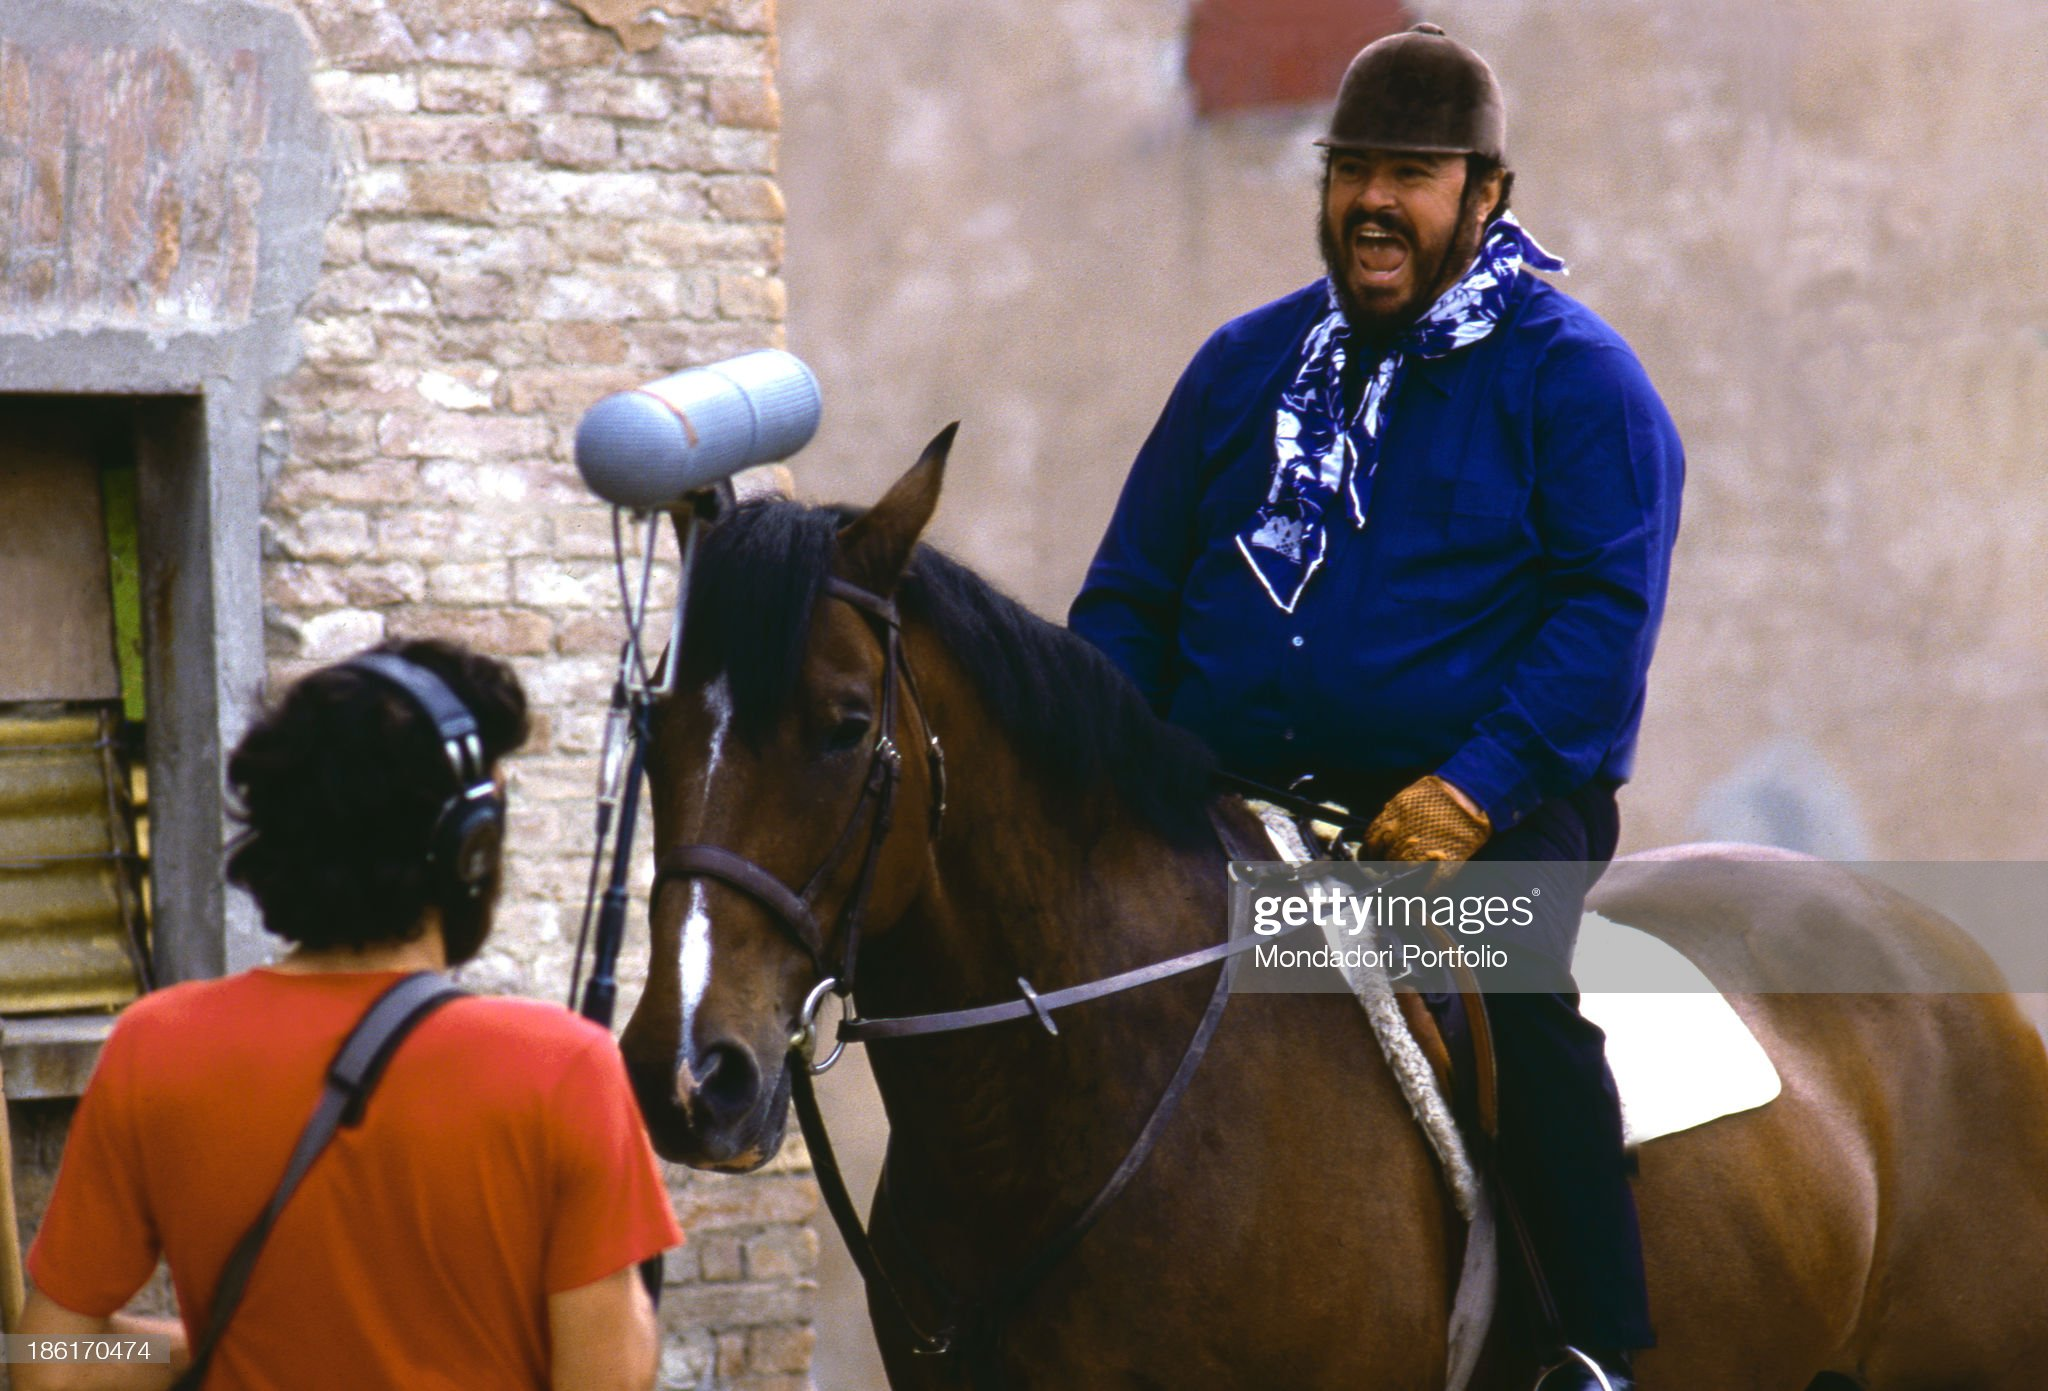 https://media.gettyimages.com/photos/italian-tenor-luciano-pavarotti-singing-seated-on-horseback-modena-picture-id186170474?s=2048x2048